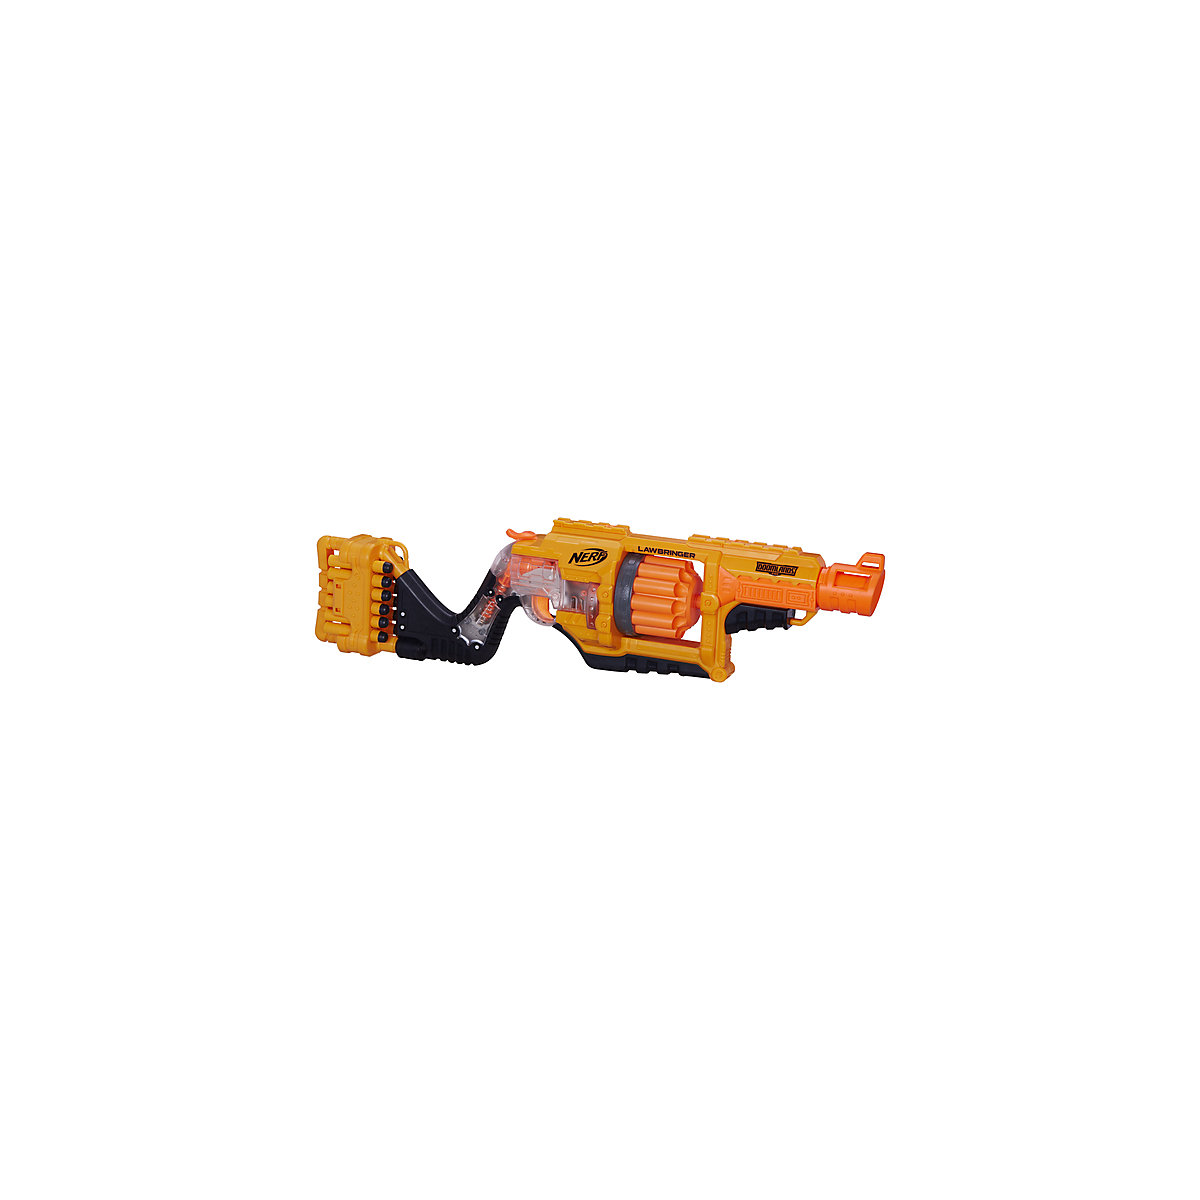 Toy Guns NERF 10023651 Children Kids Toy Gun Weapon Blasters Boys Shooting games Outdoor play 3pcs set mk14 modo psg 1 svd sniper rifle weapon gun for 1 6 scale12 action figure 1 6 model toy christmas gift free shipping